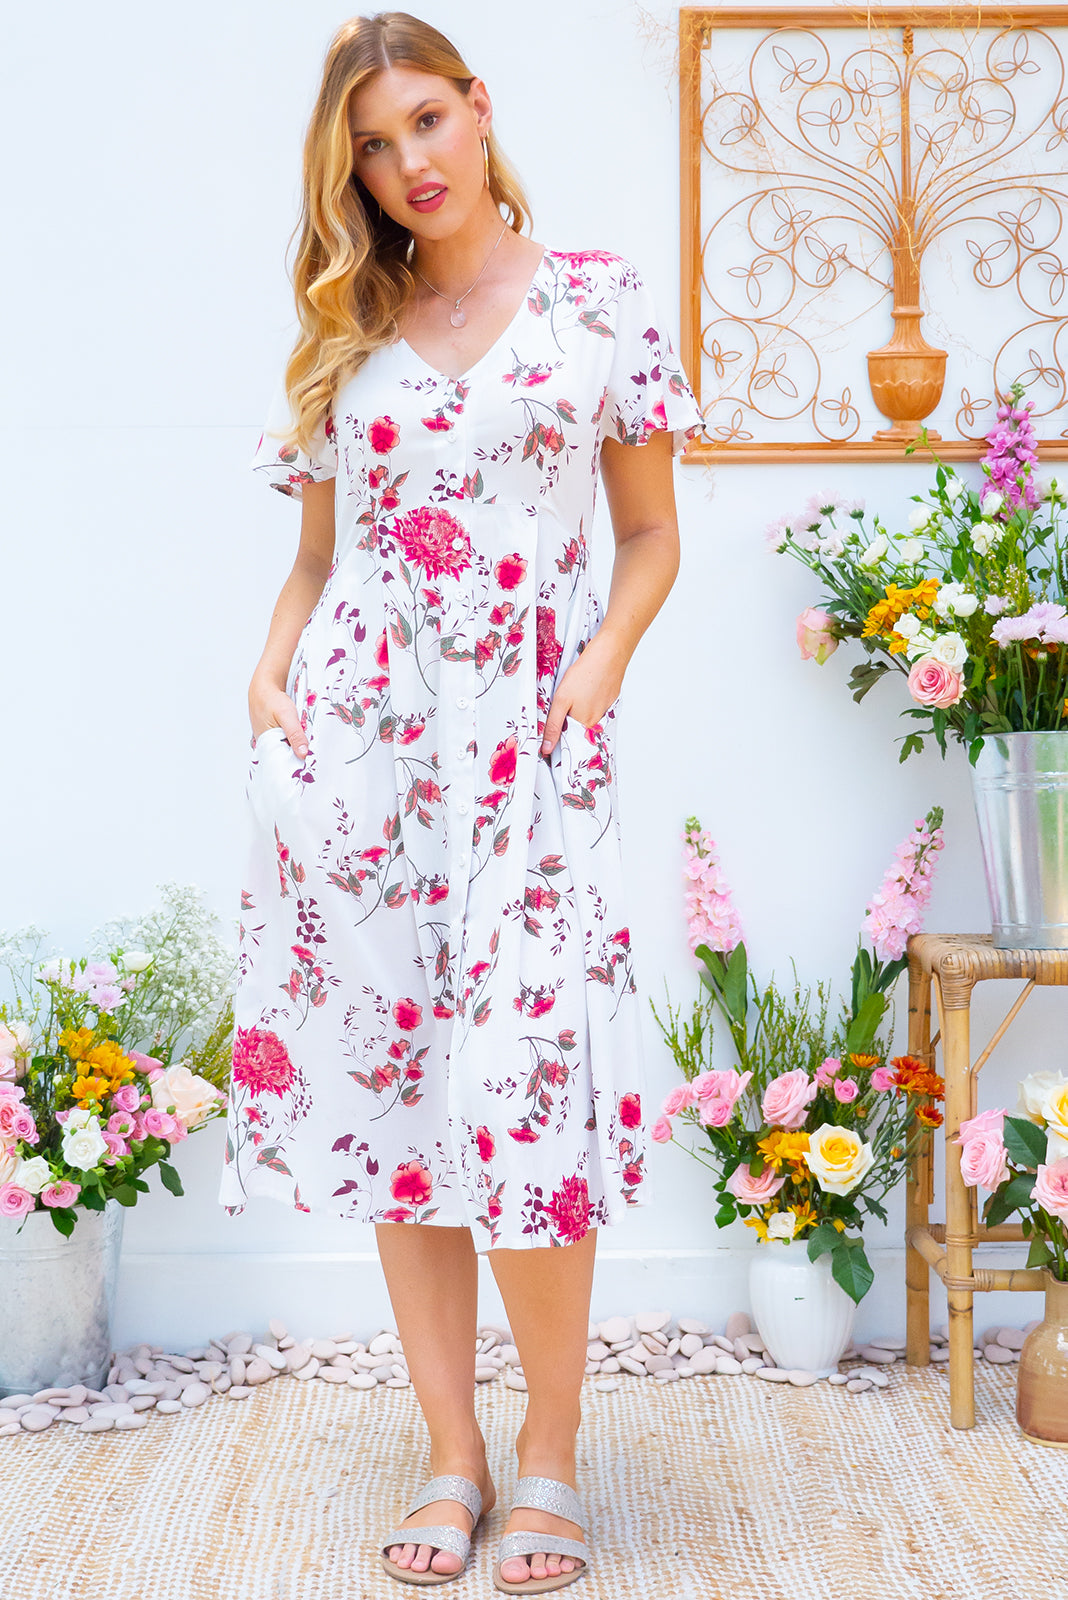 Faithful Lilly White Midi dress features a button front, soft petal sleeve and deep side pockets it is made in a crinkled woven rayon and comes in a crisp white and pink floral